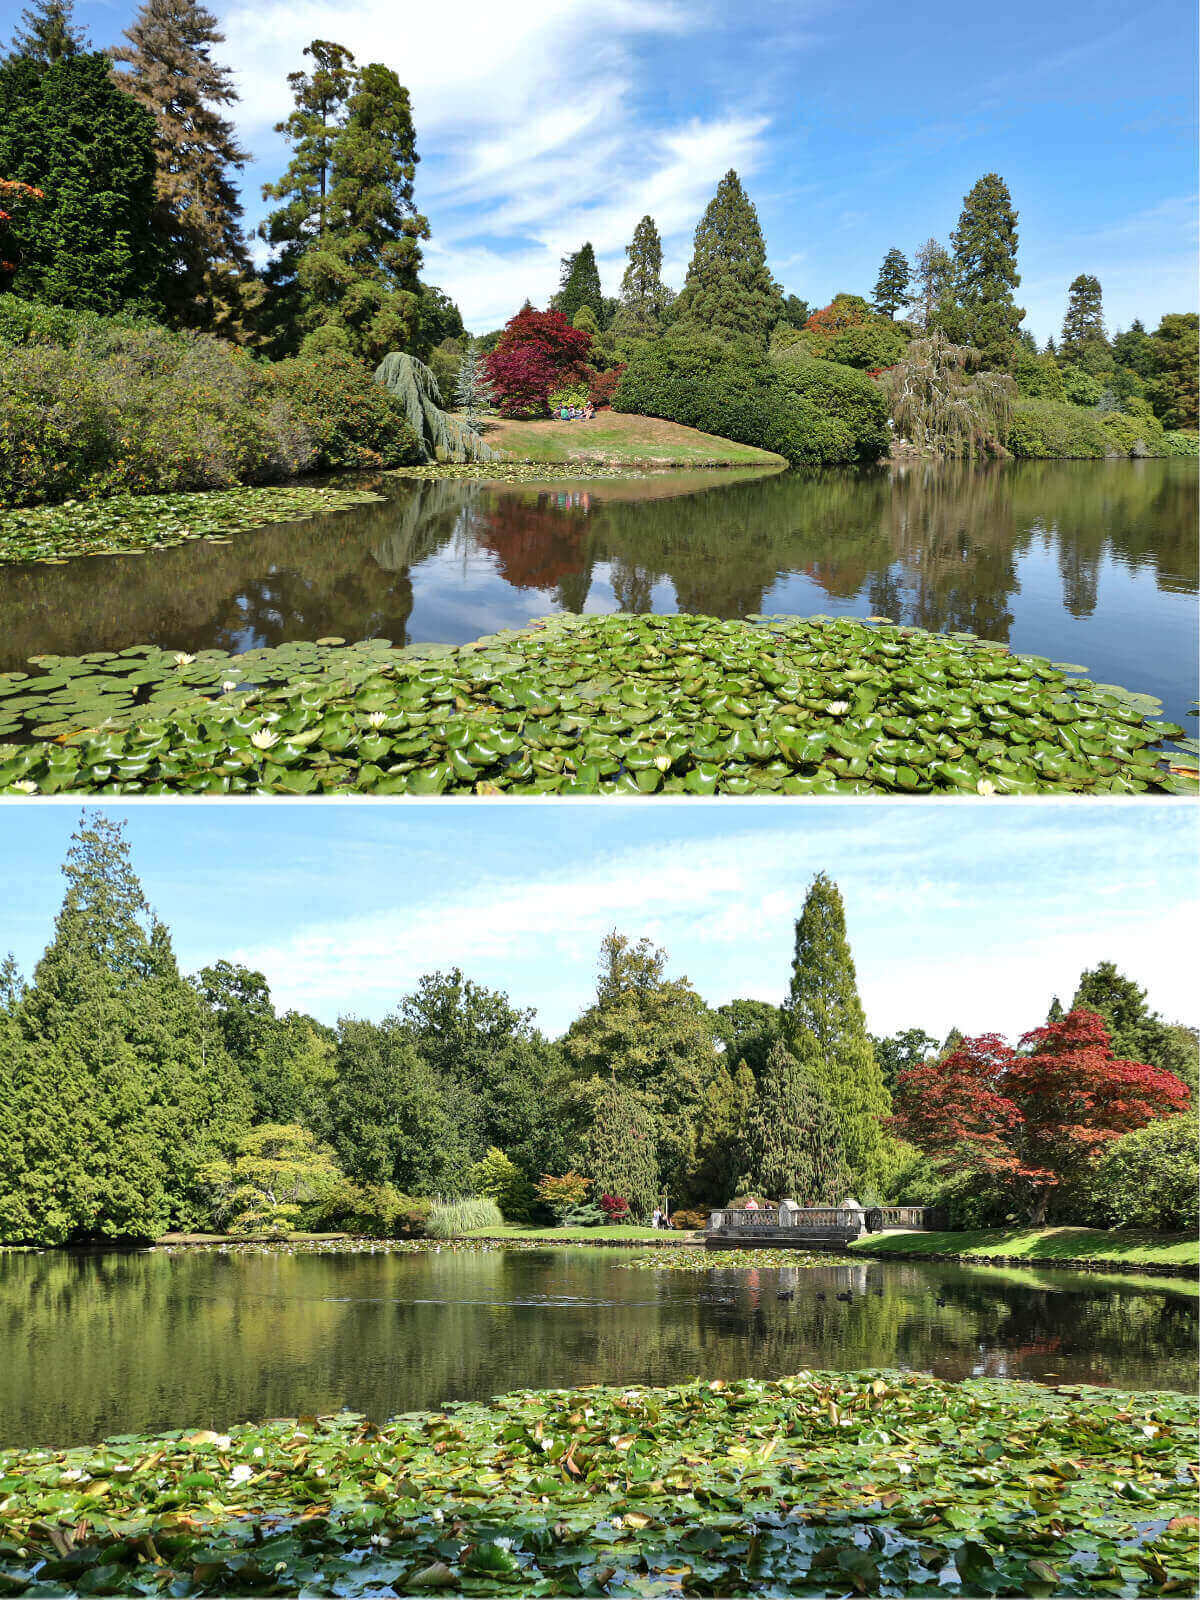 Summer Sheffield Park and Garden, England